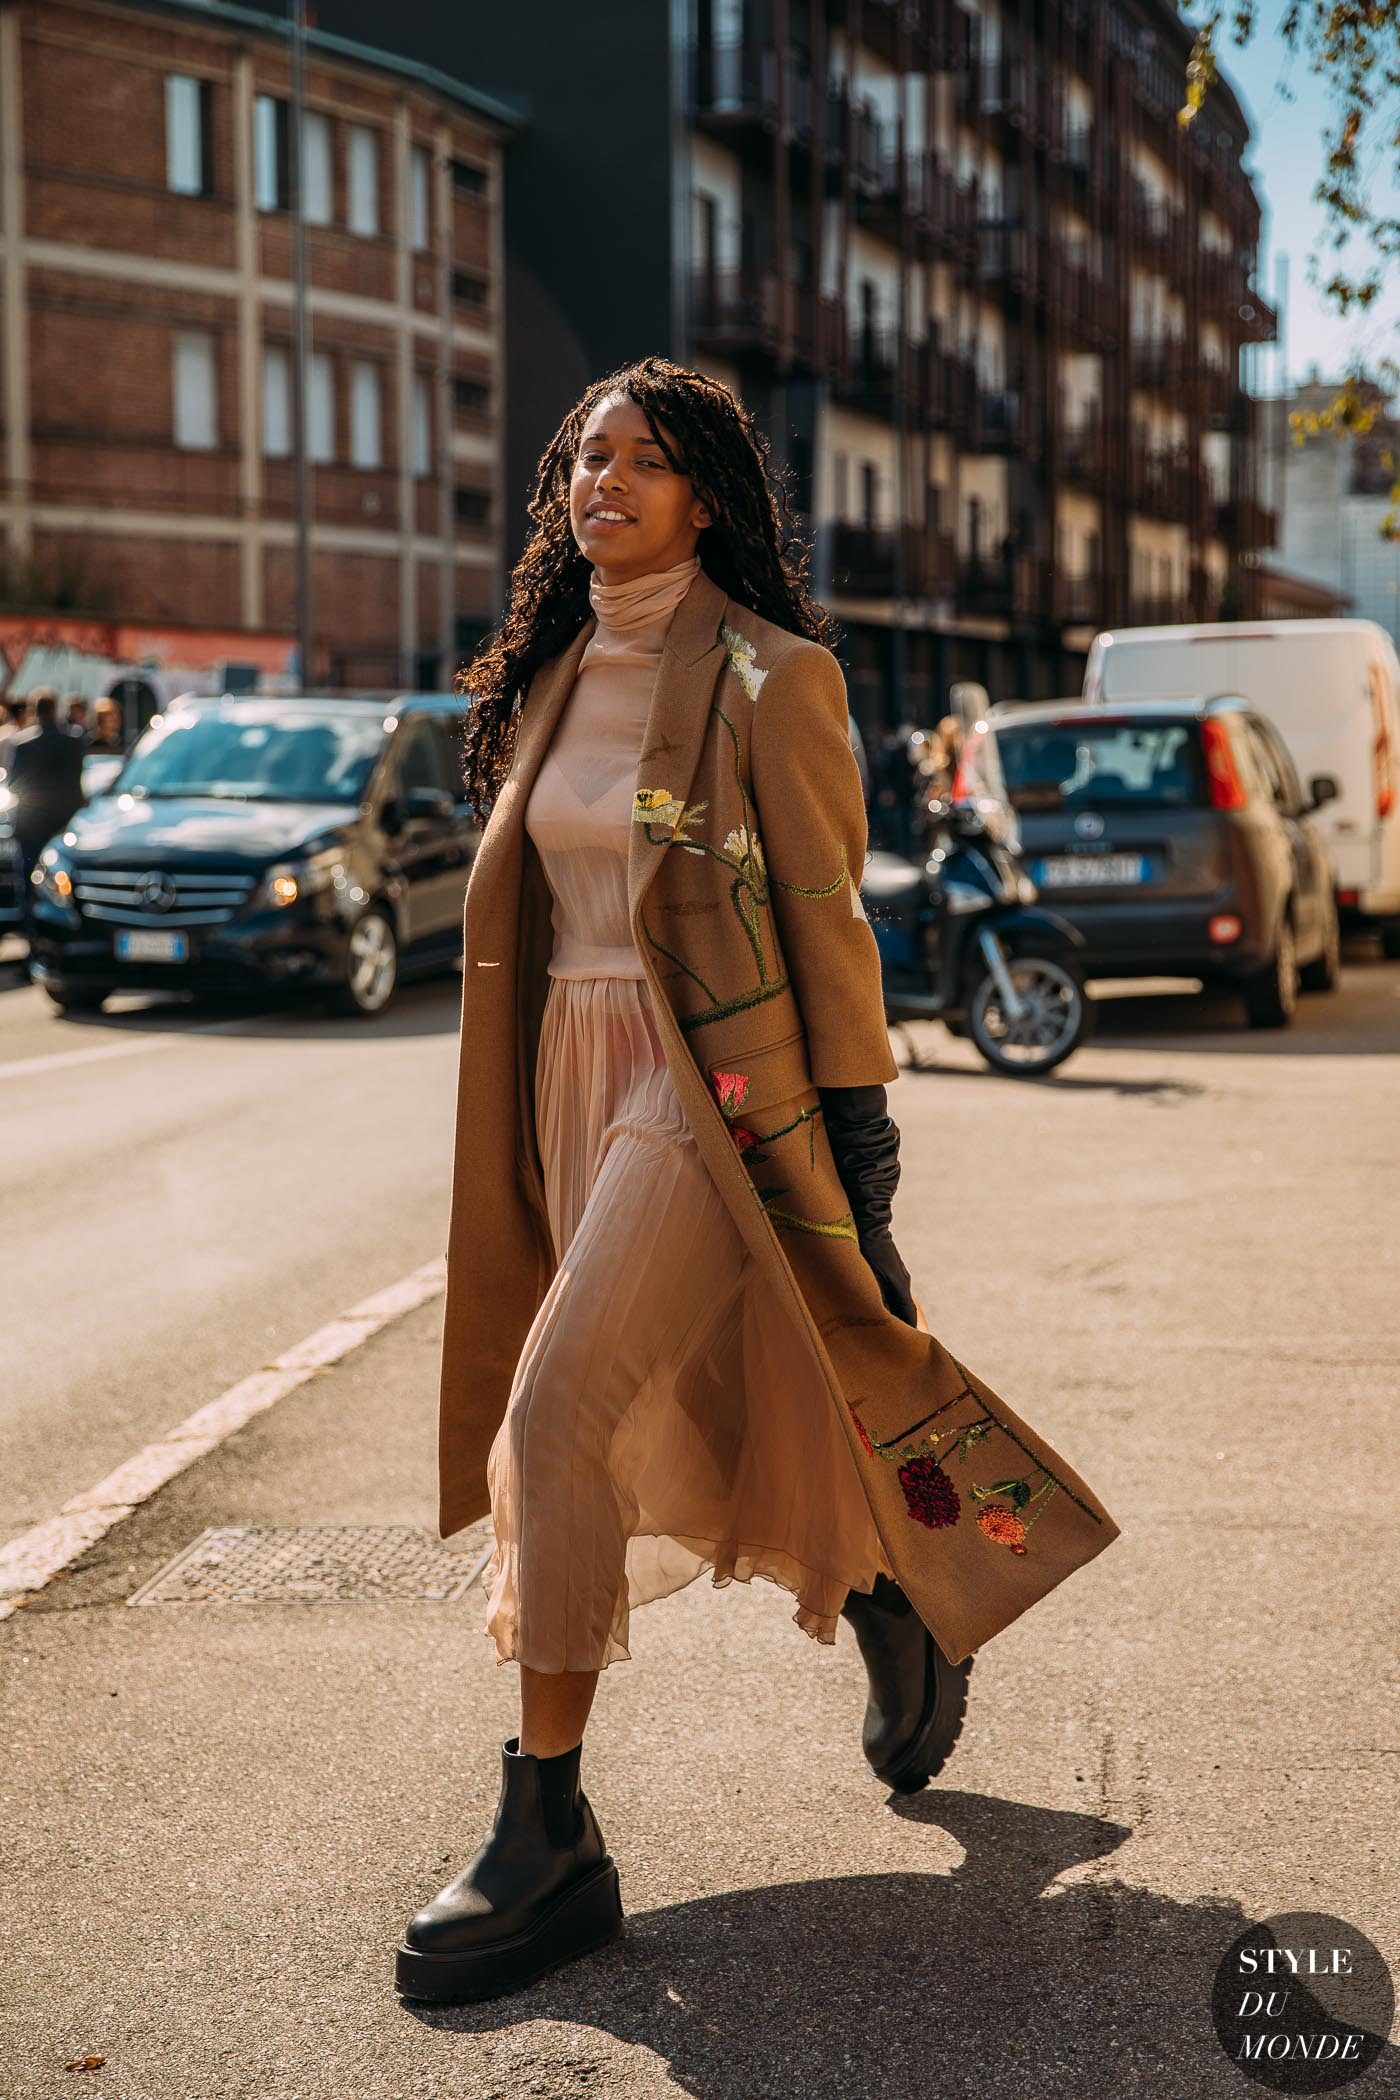 Istanbul Street Style Photos That Prove Fall Is NOT Boring